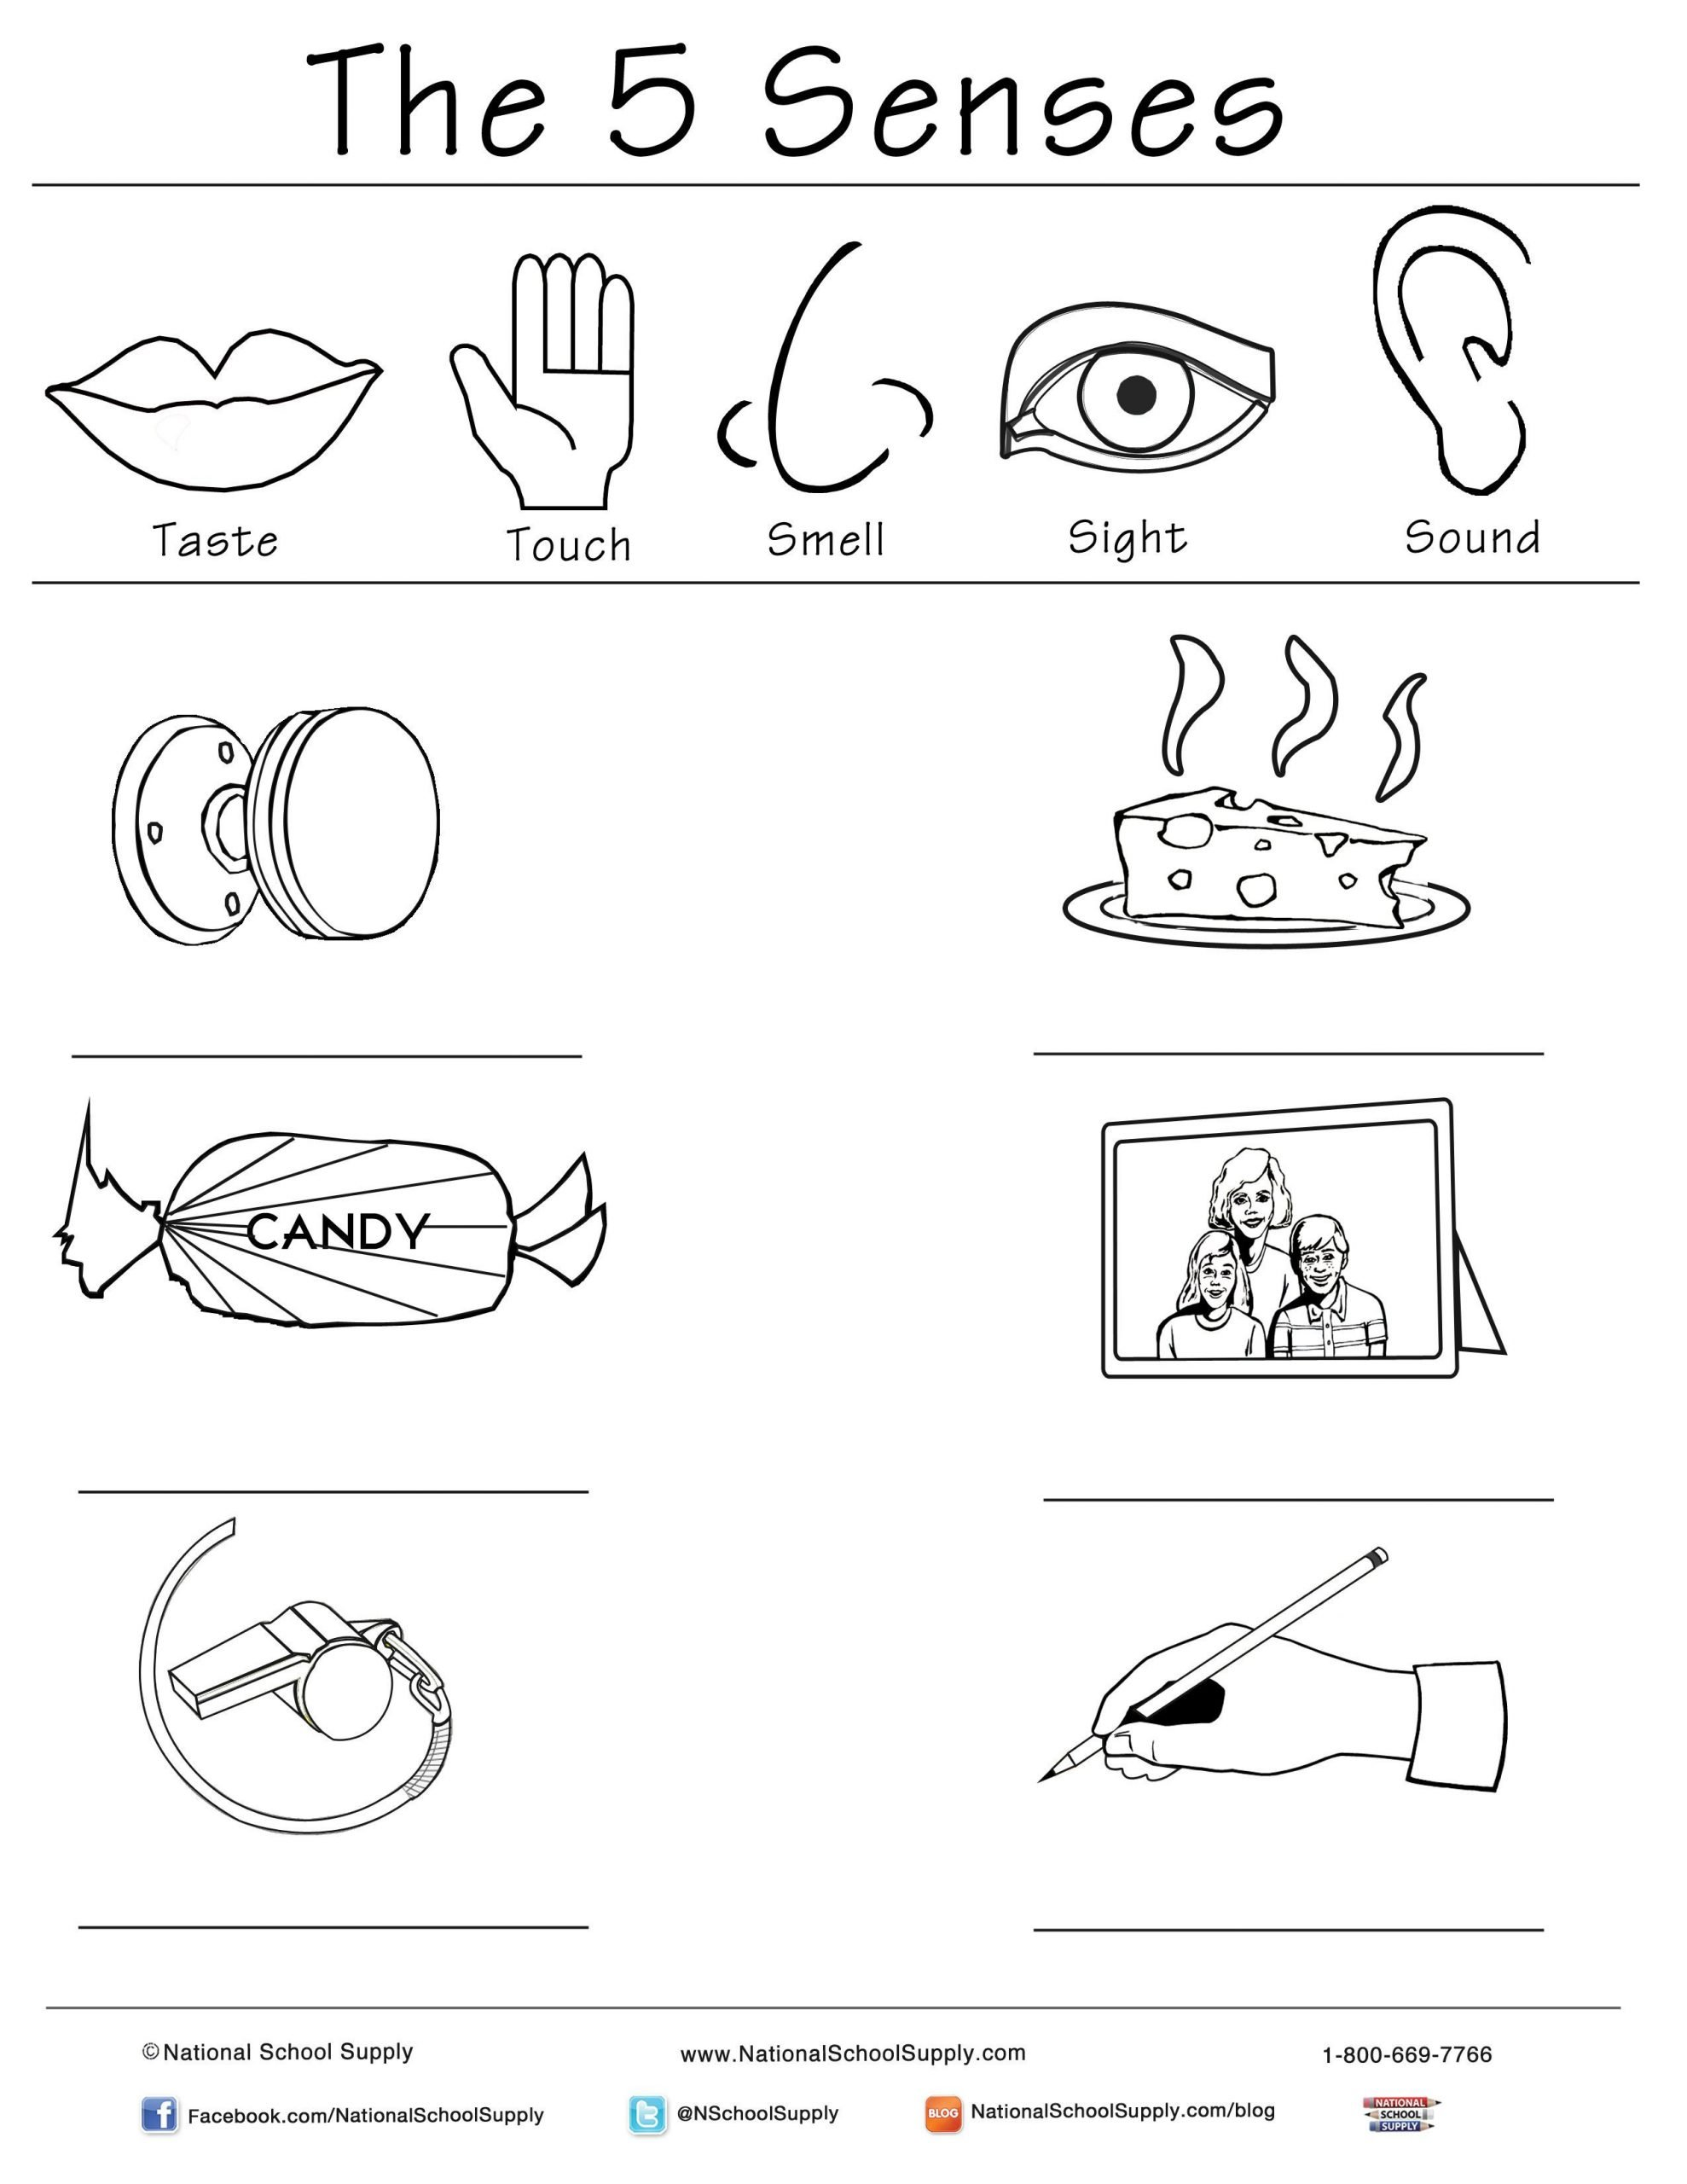 Free Printable Five Senses Worksheets New 5 Senses Printable is Great for Classrooms Of All Ages